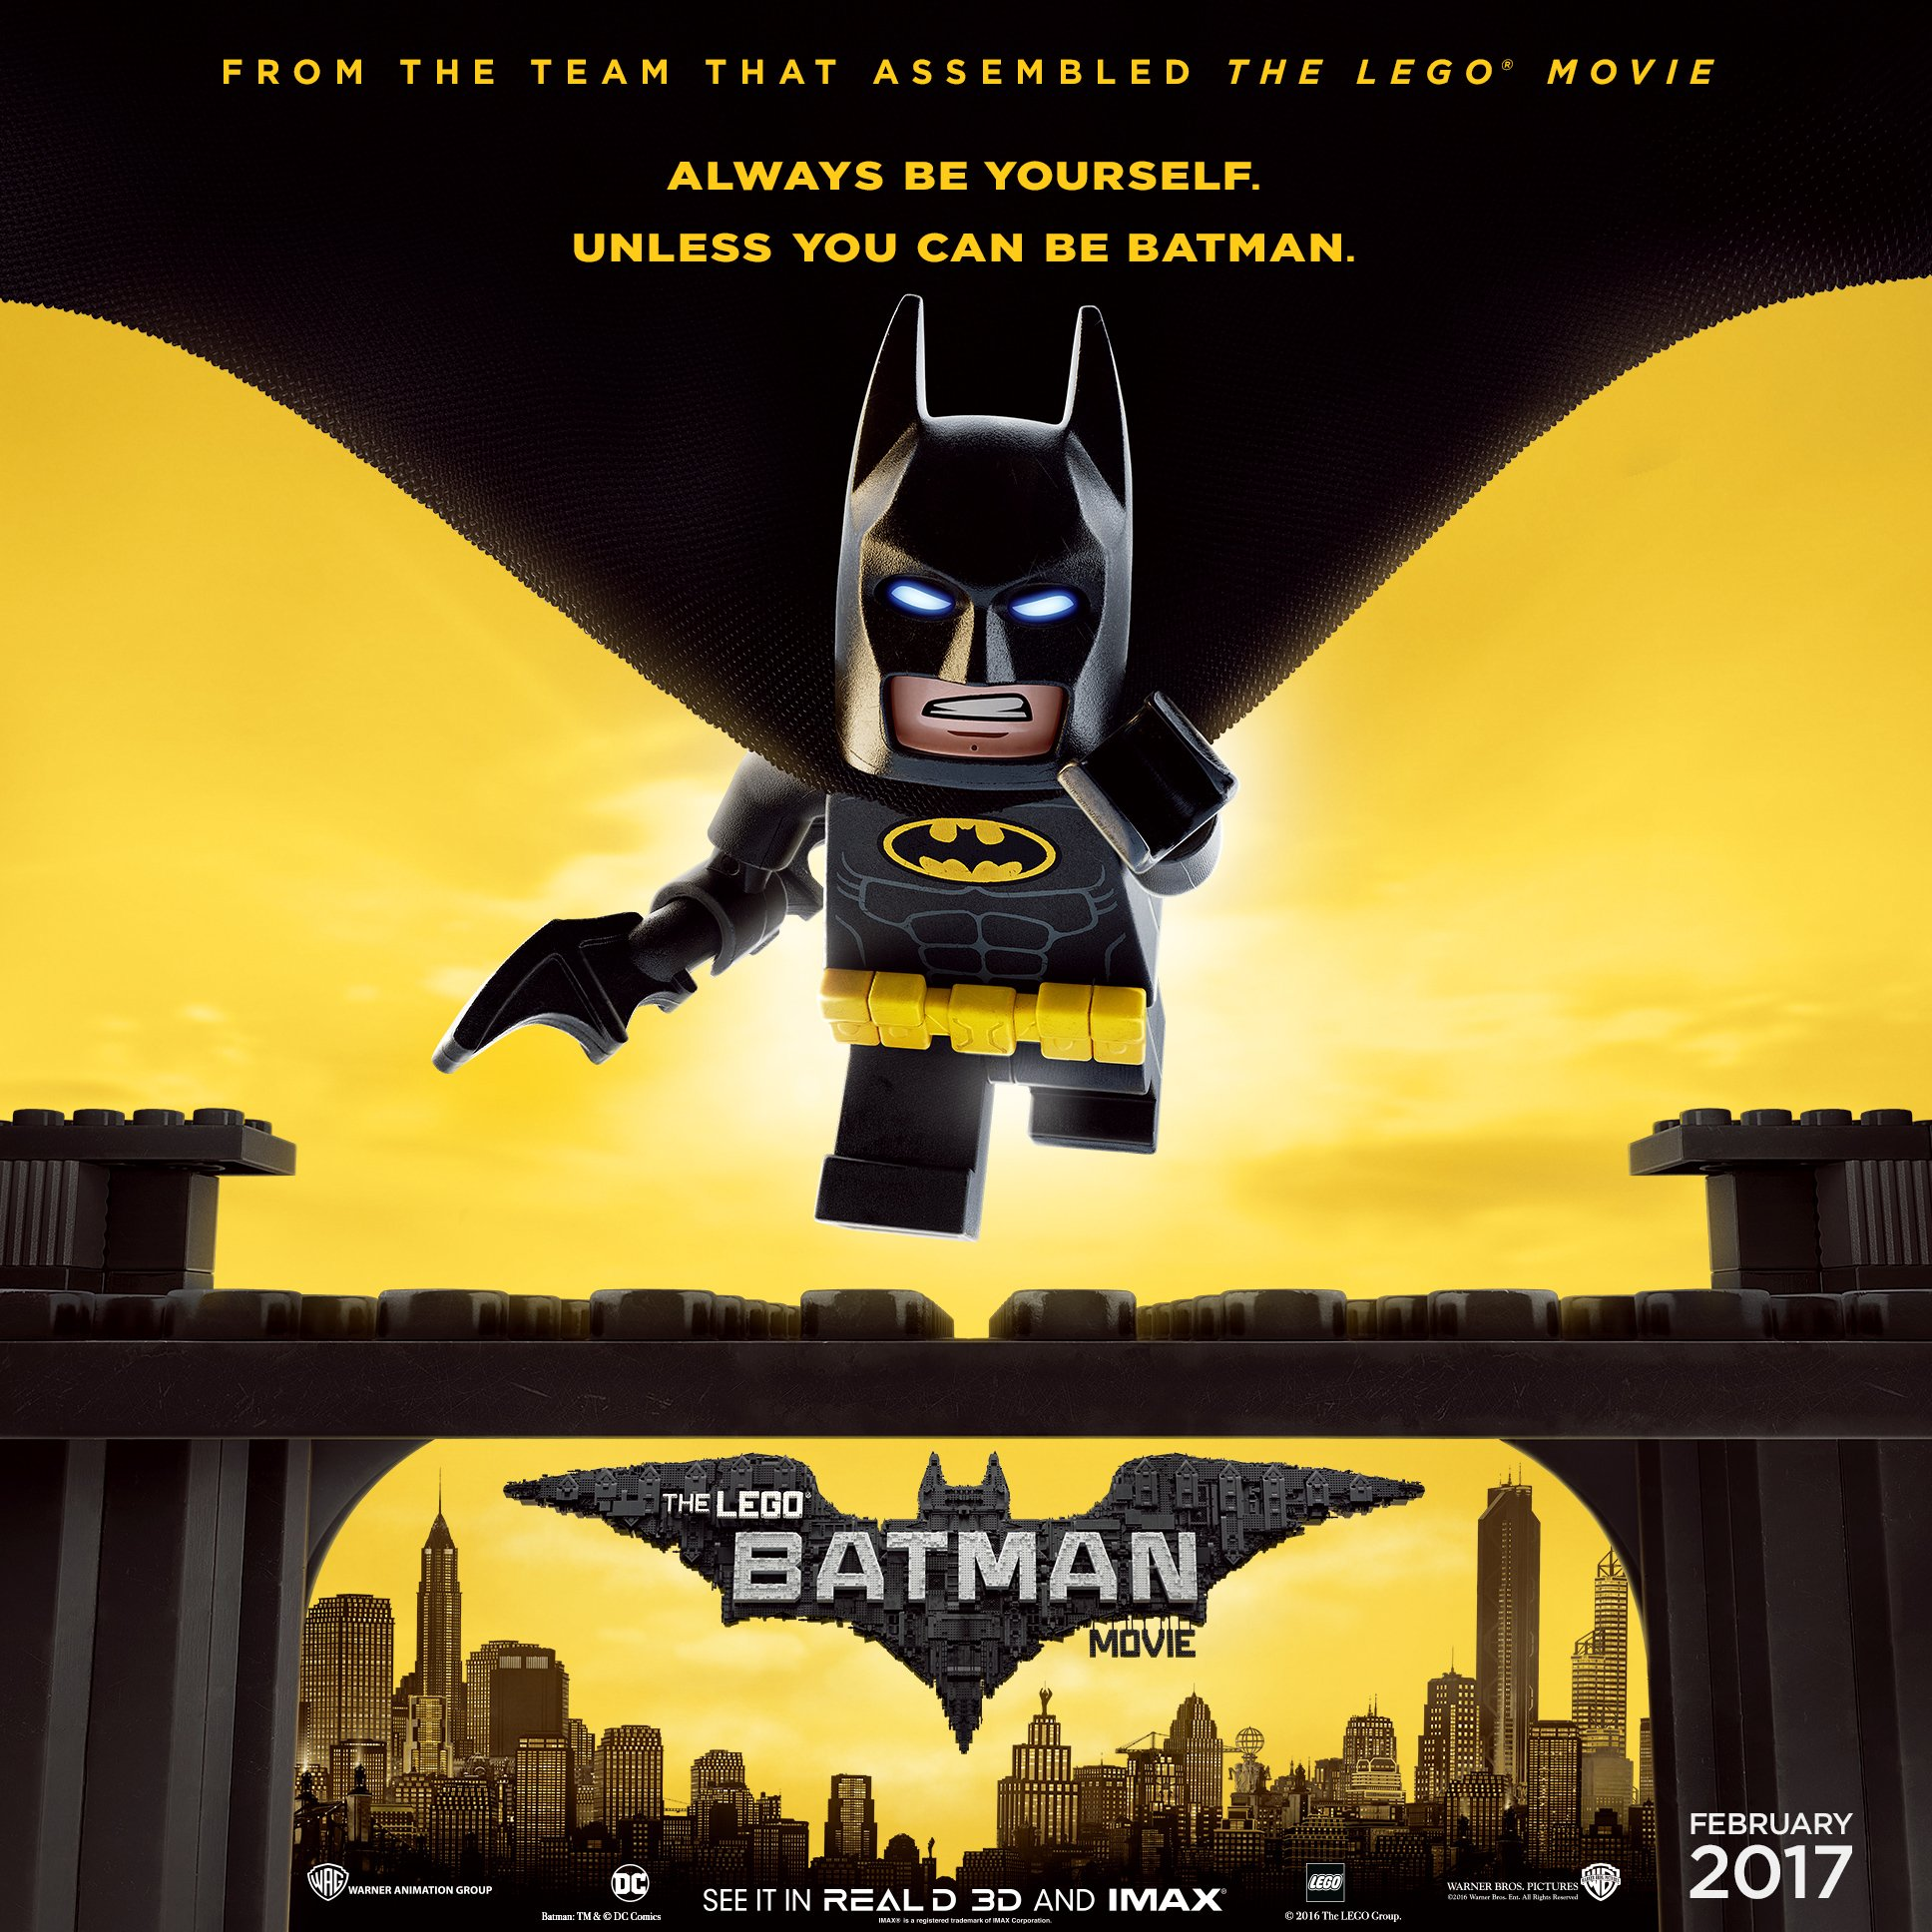 New 'The LEGO Batman Movie' Poster Reminds You To Be